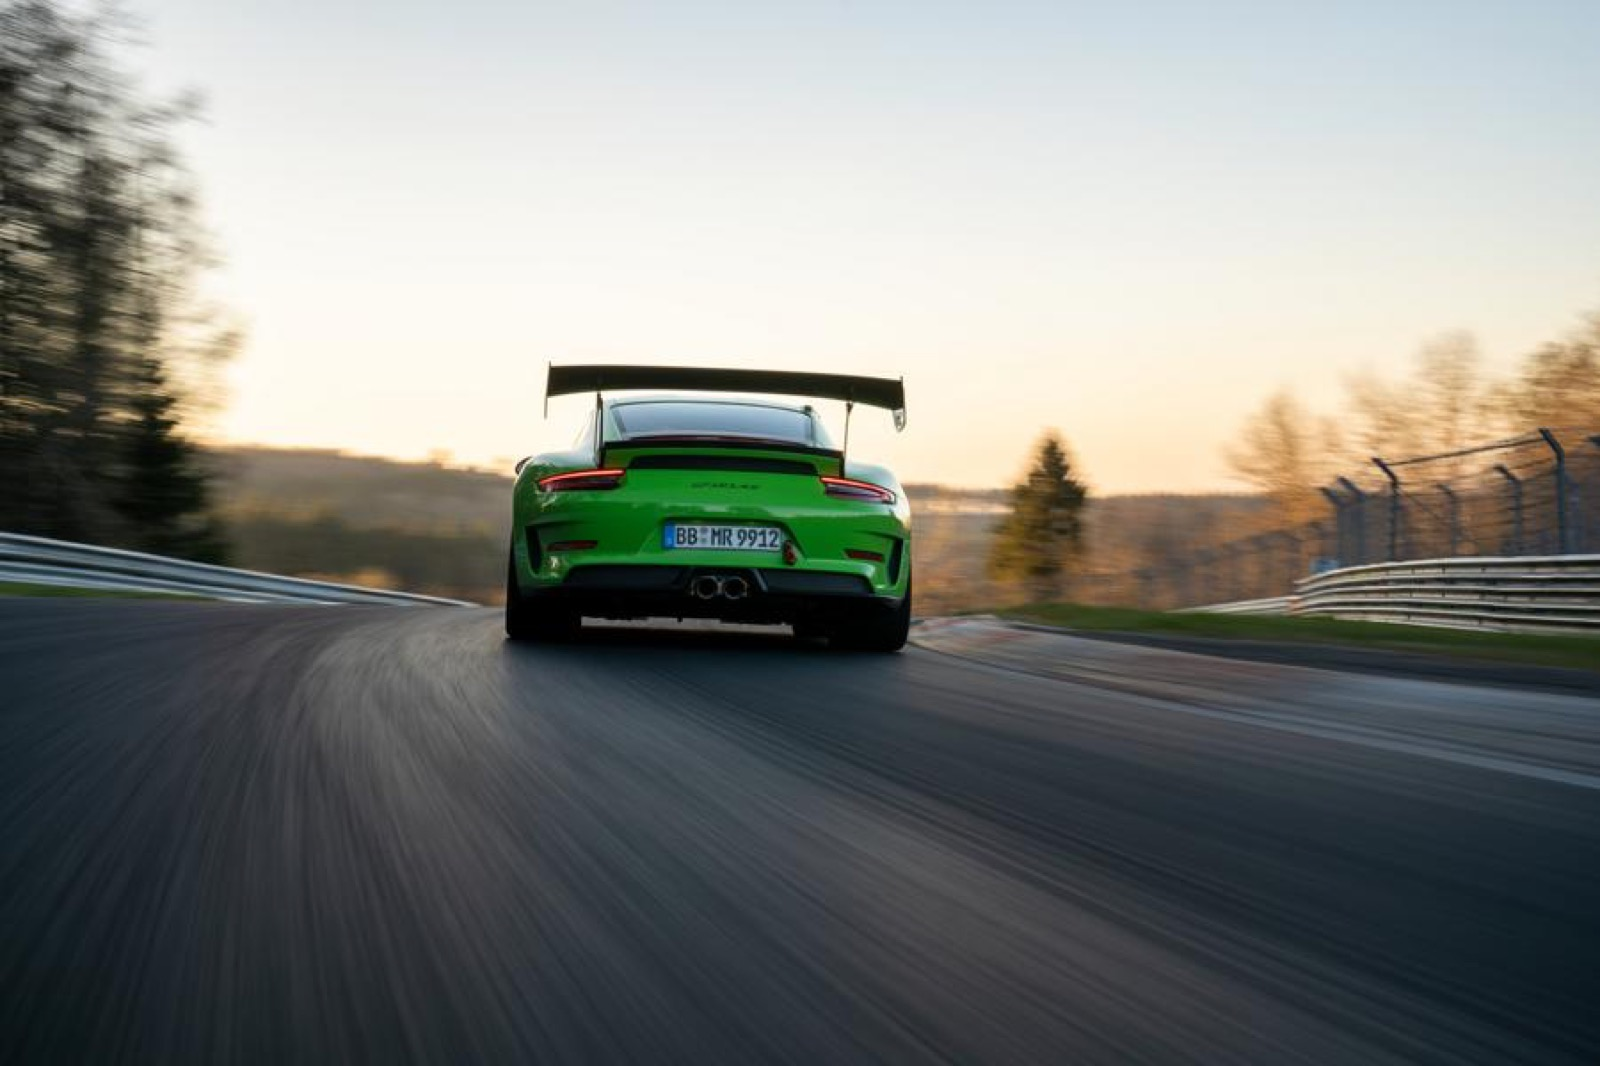 Porsche-911-GT3-RS-MR-by-Manthey-Racing-10